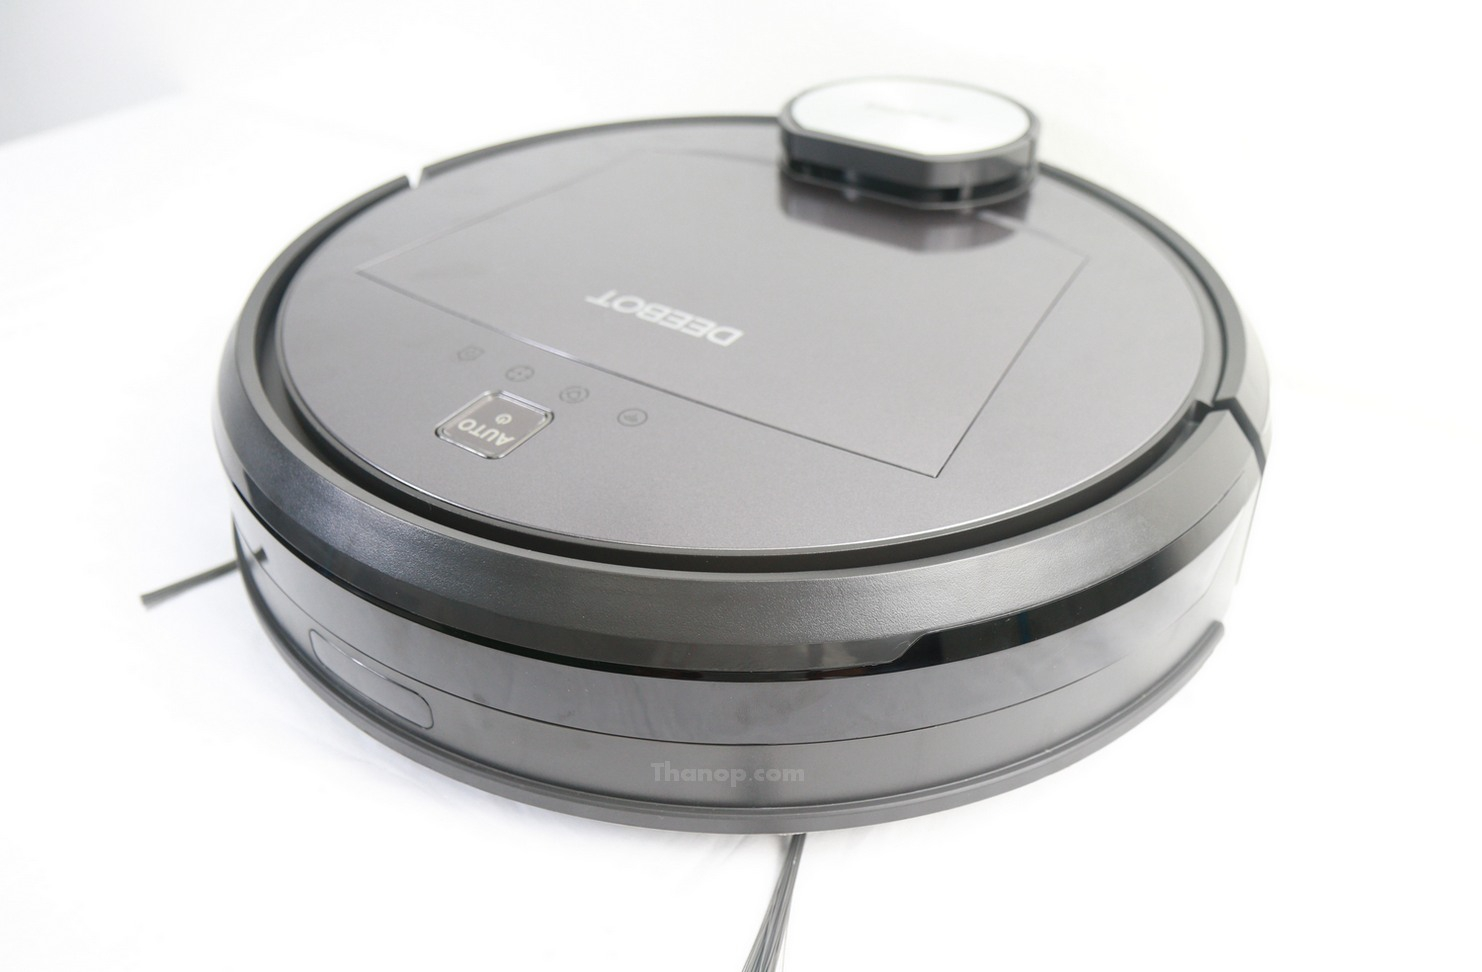 ECOVACS DEEBOT R95 Featured Image